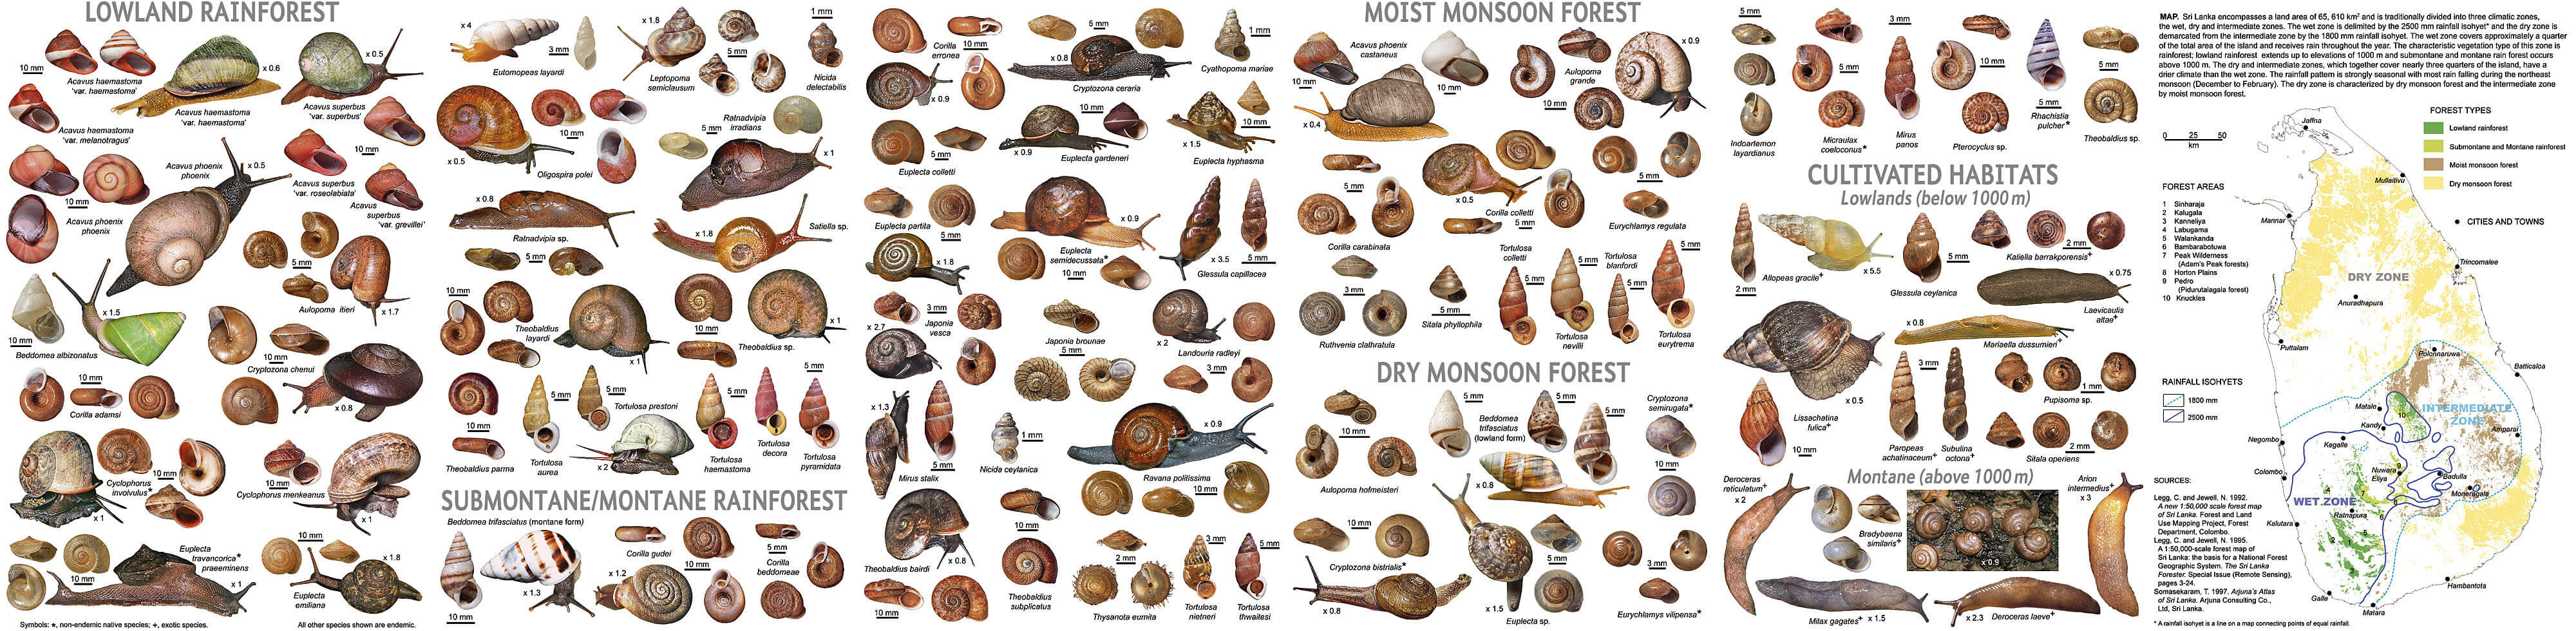 Snail identification guide